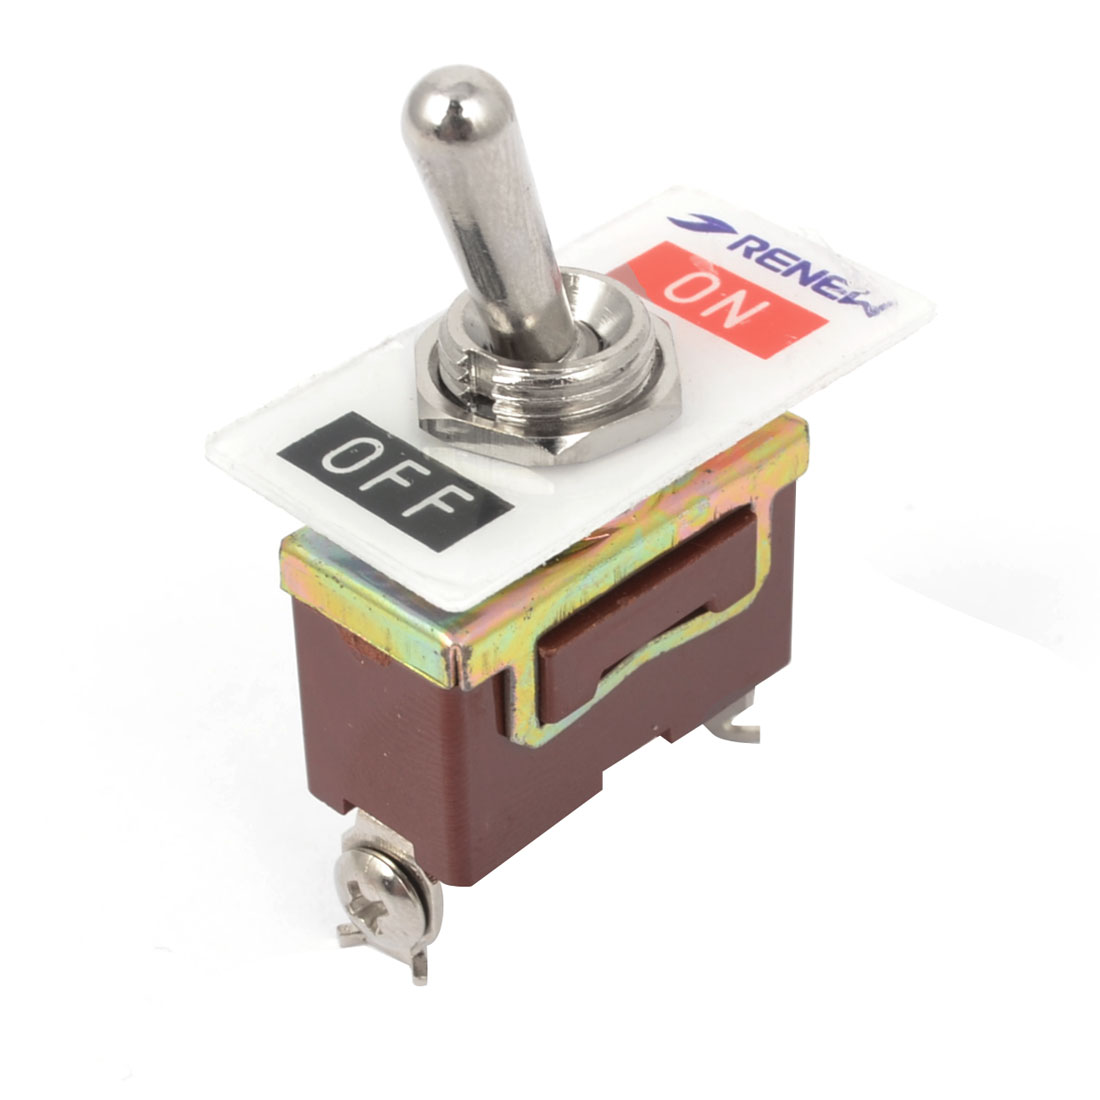 AC 250V 10A/125V 15A ON-OFF Double Screw Terminals SPST Locking Toggle Switch